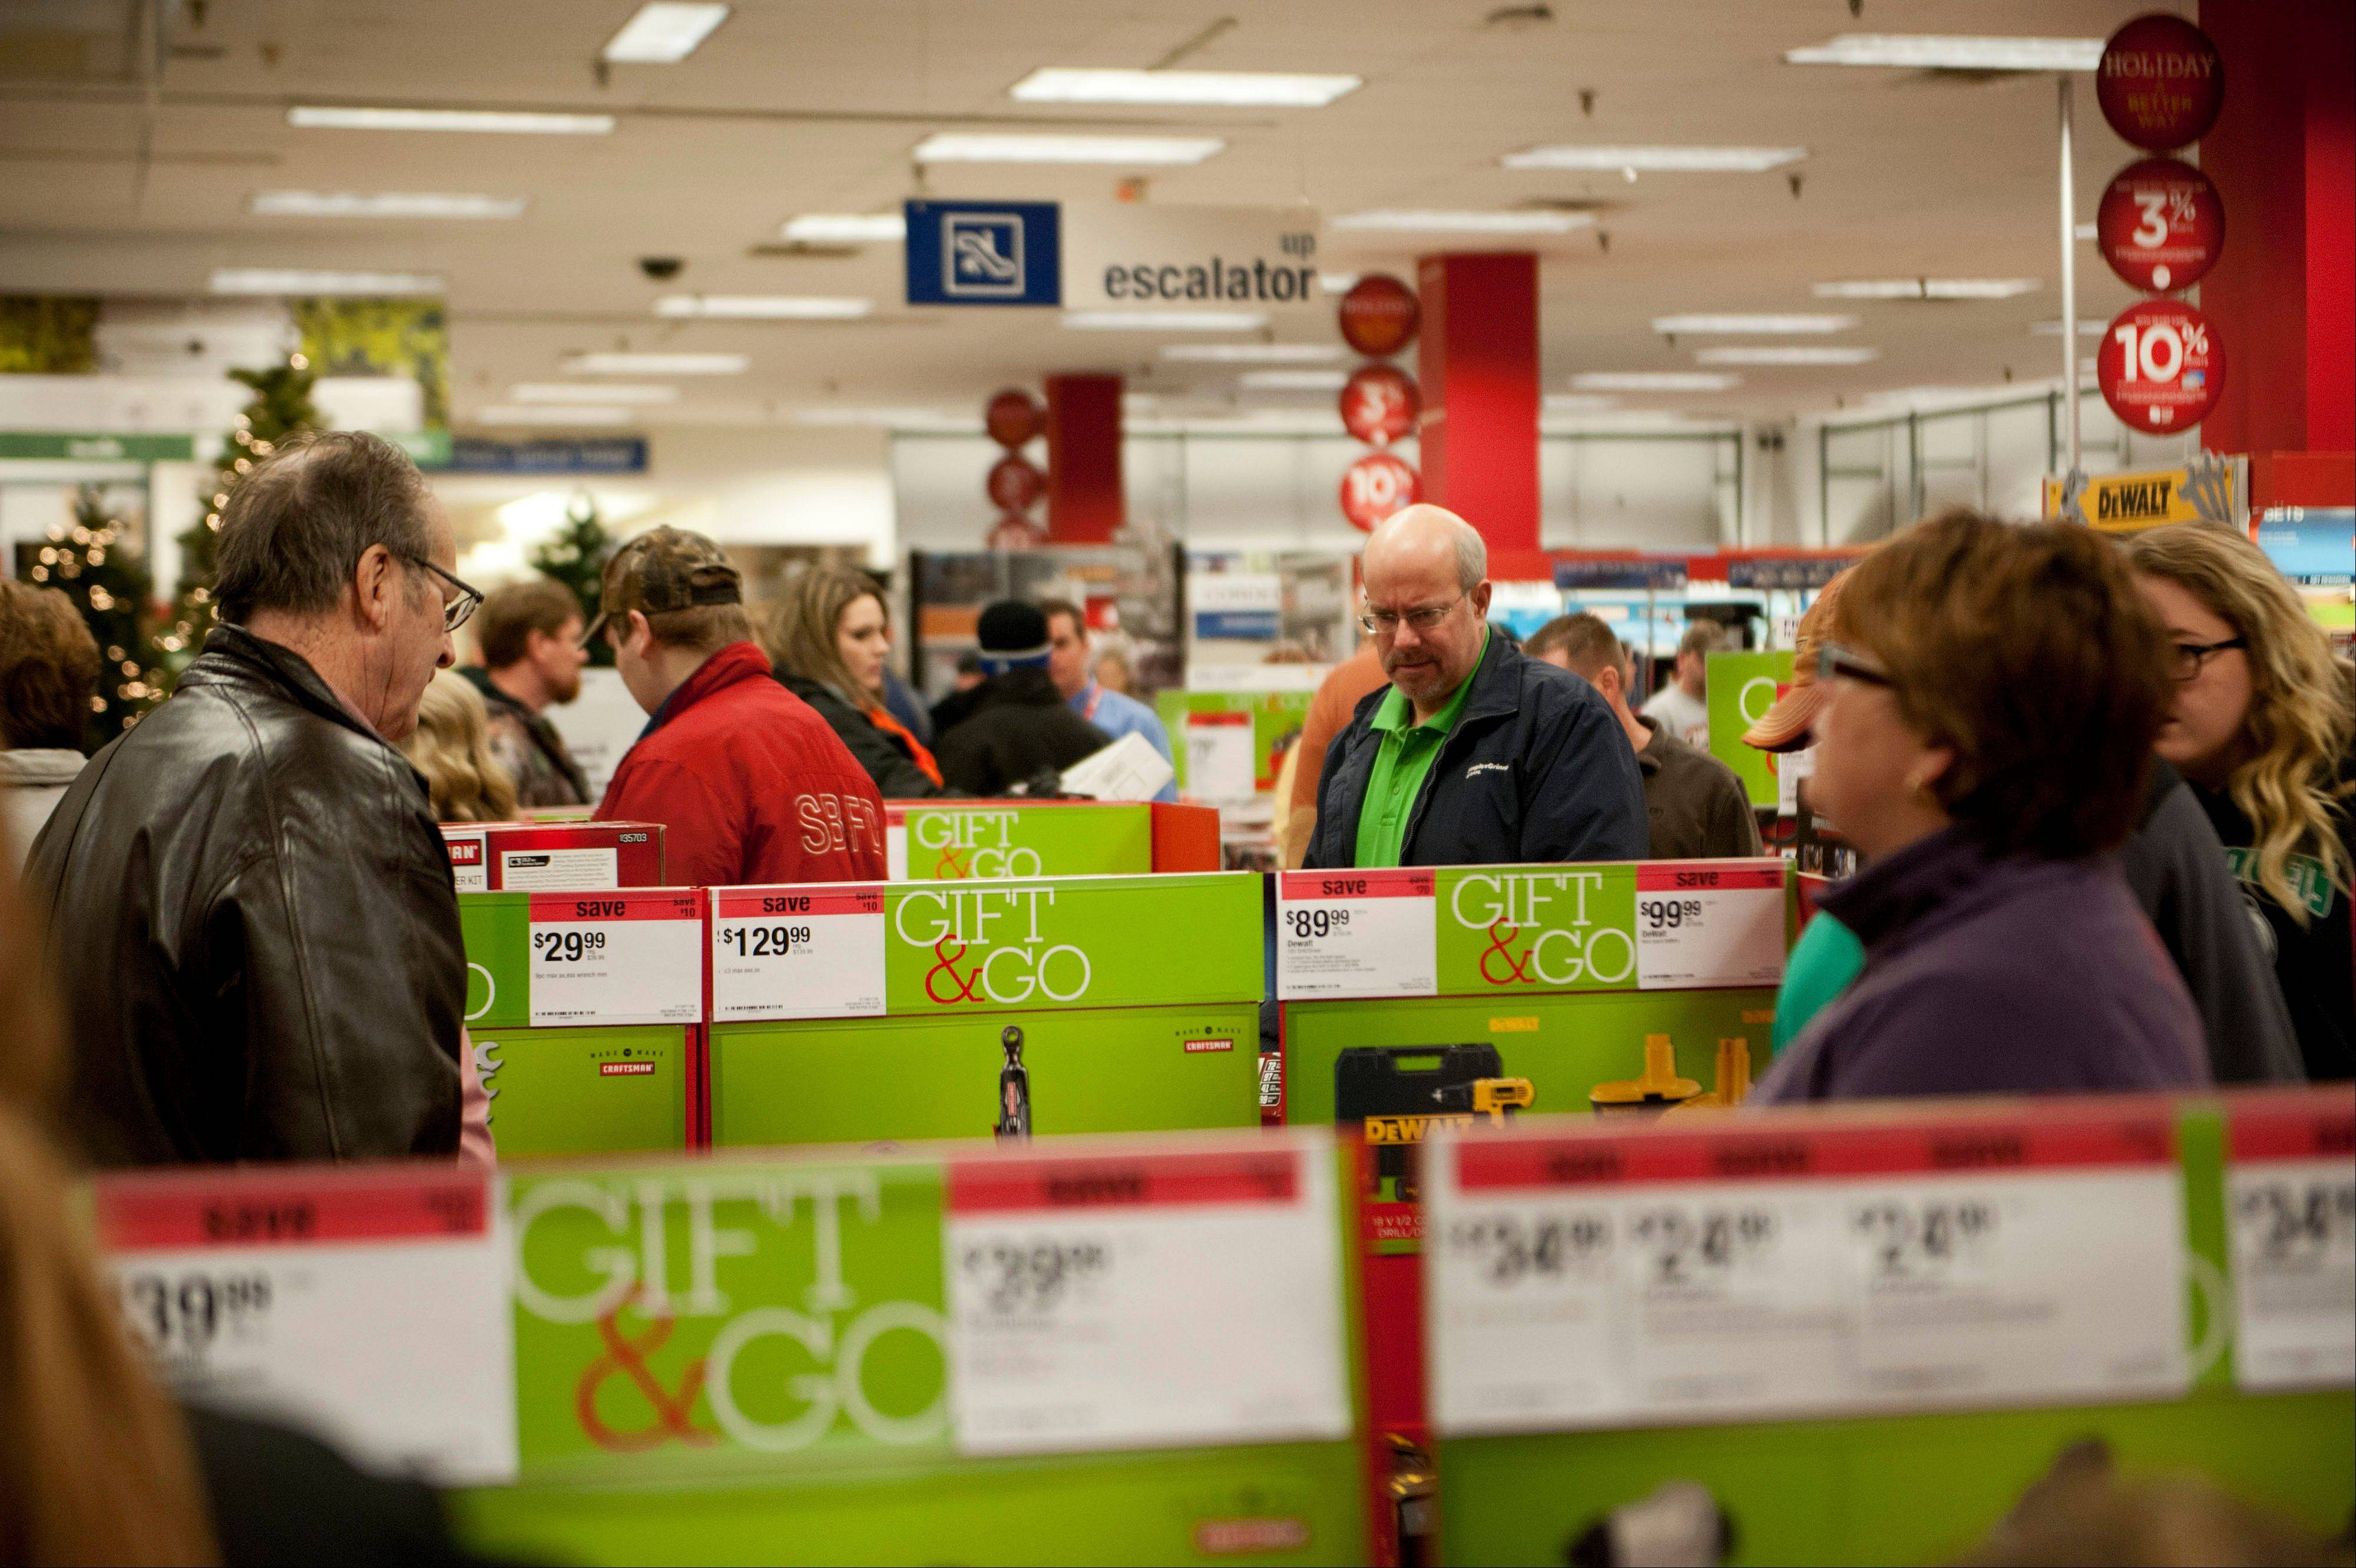 Associated PressShoppers browse sale merchandise at a Sears Holdings Corp. store in Peoria,